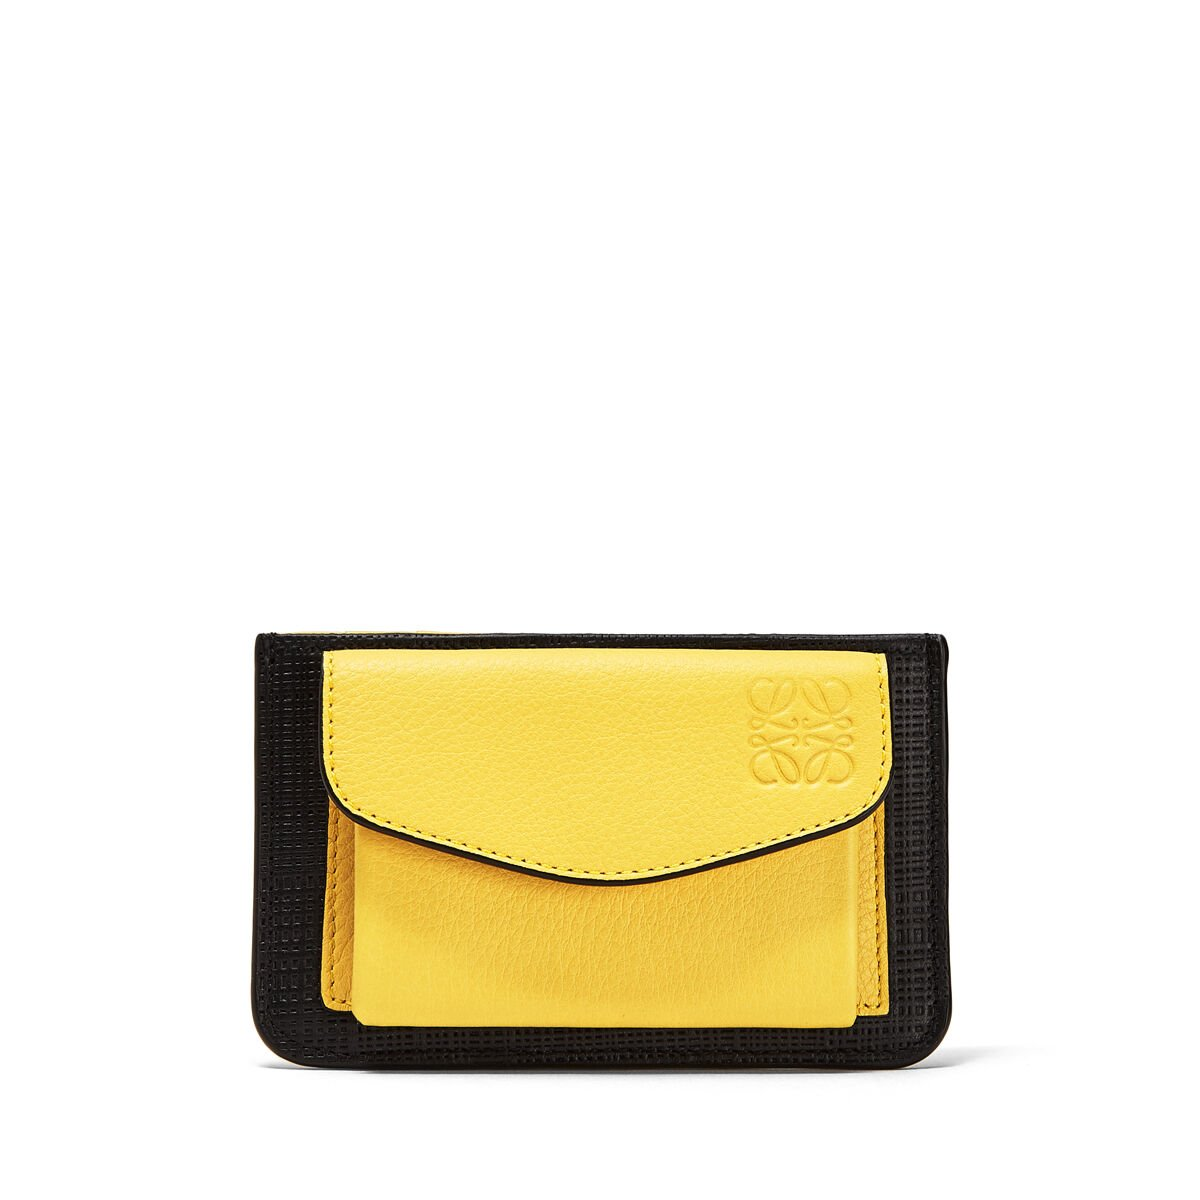 LOEWE Pocket/Card Holder Black/Yellow all